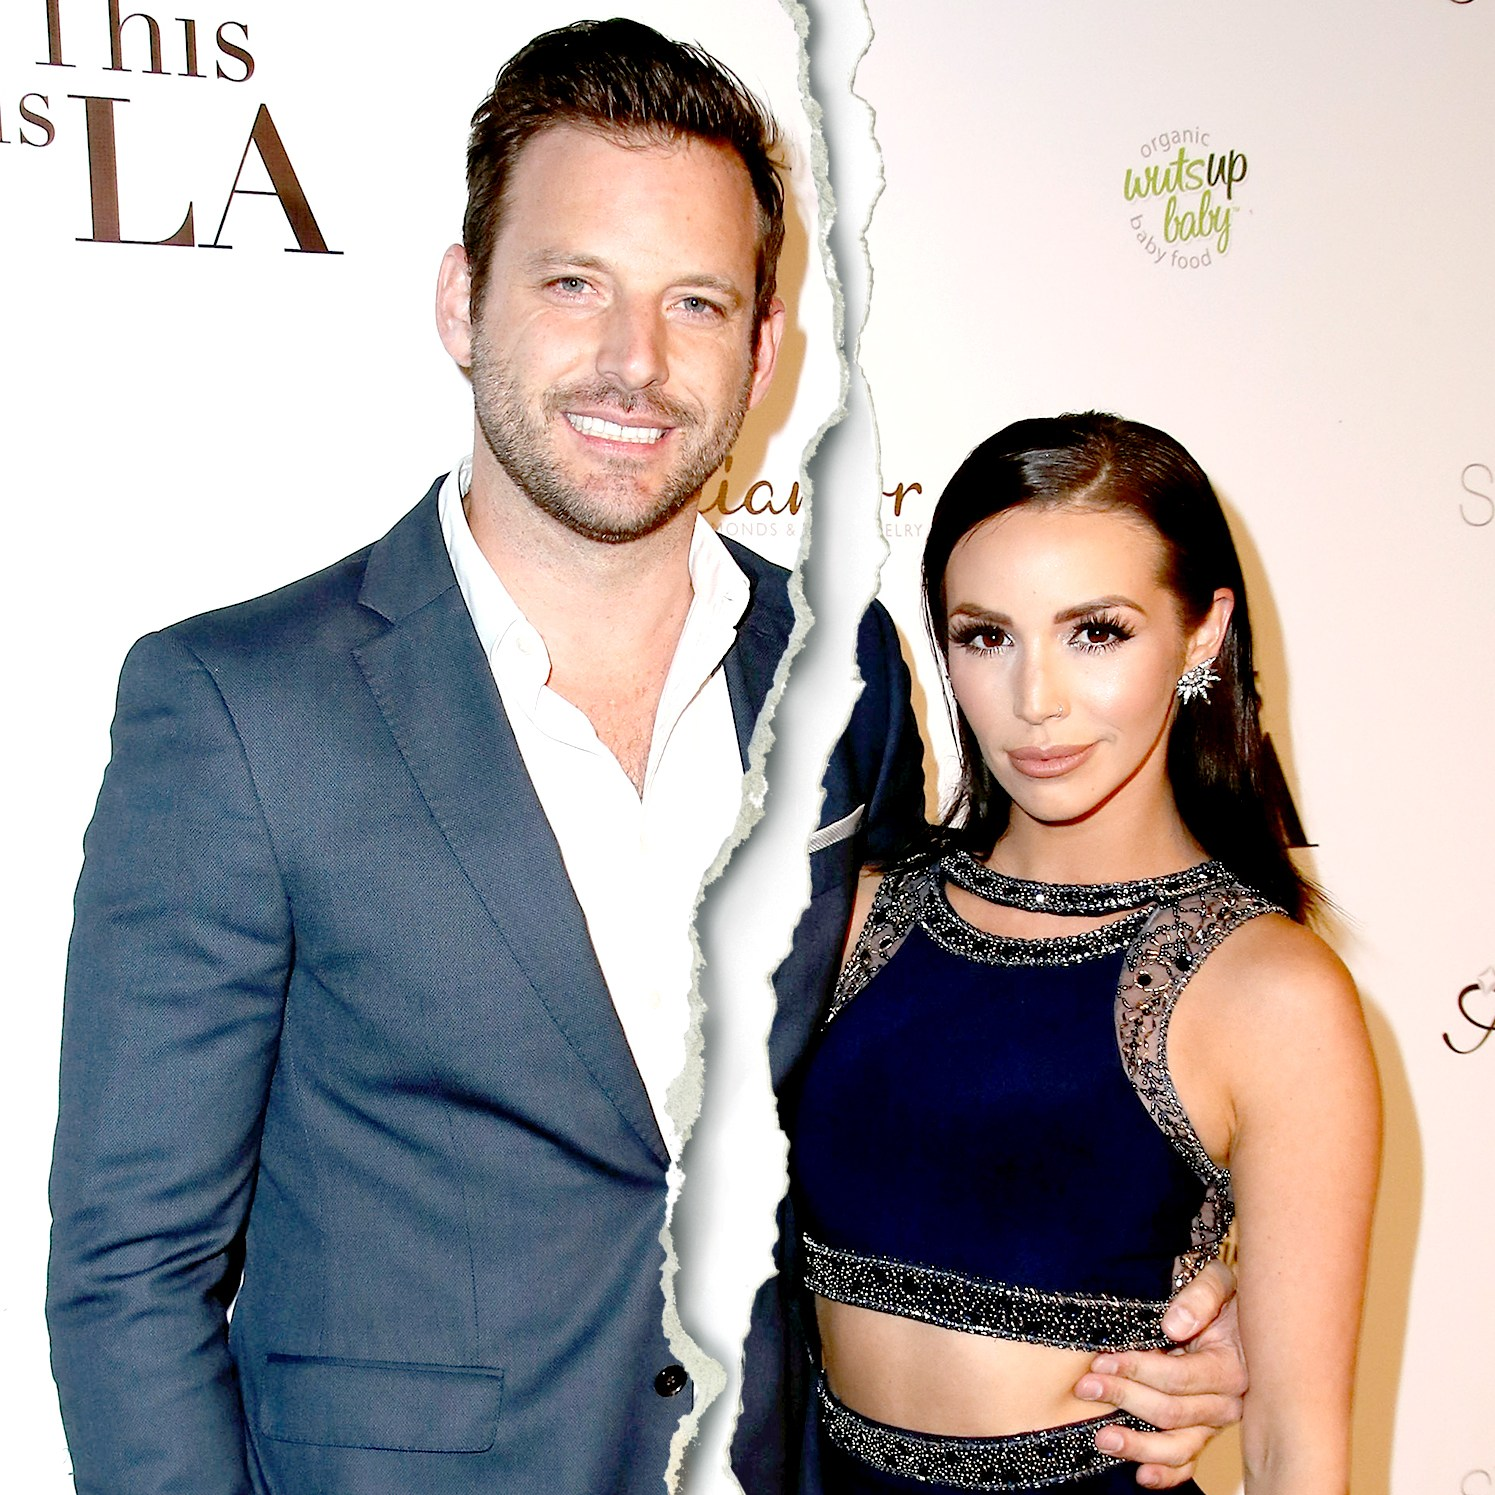 "Robert Parks-Valletta and Scheana Marie attend the premiere party for Circle 8 Production's ""This Is LA"" at Yamashiro Hollywood on May 3, 2017 in Los Angeles, California."